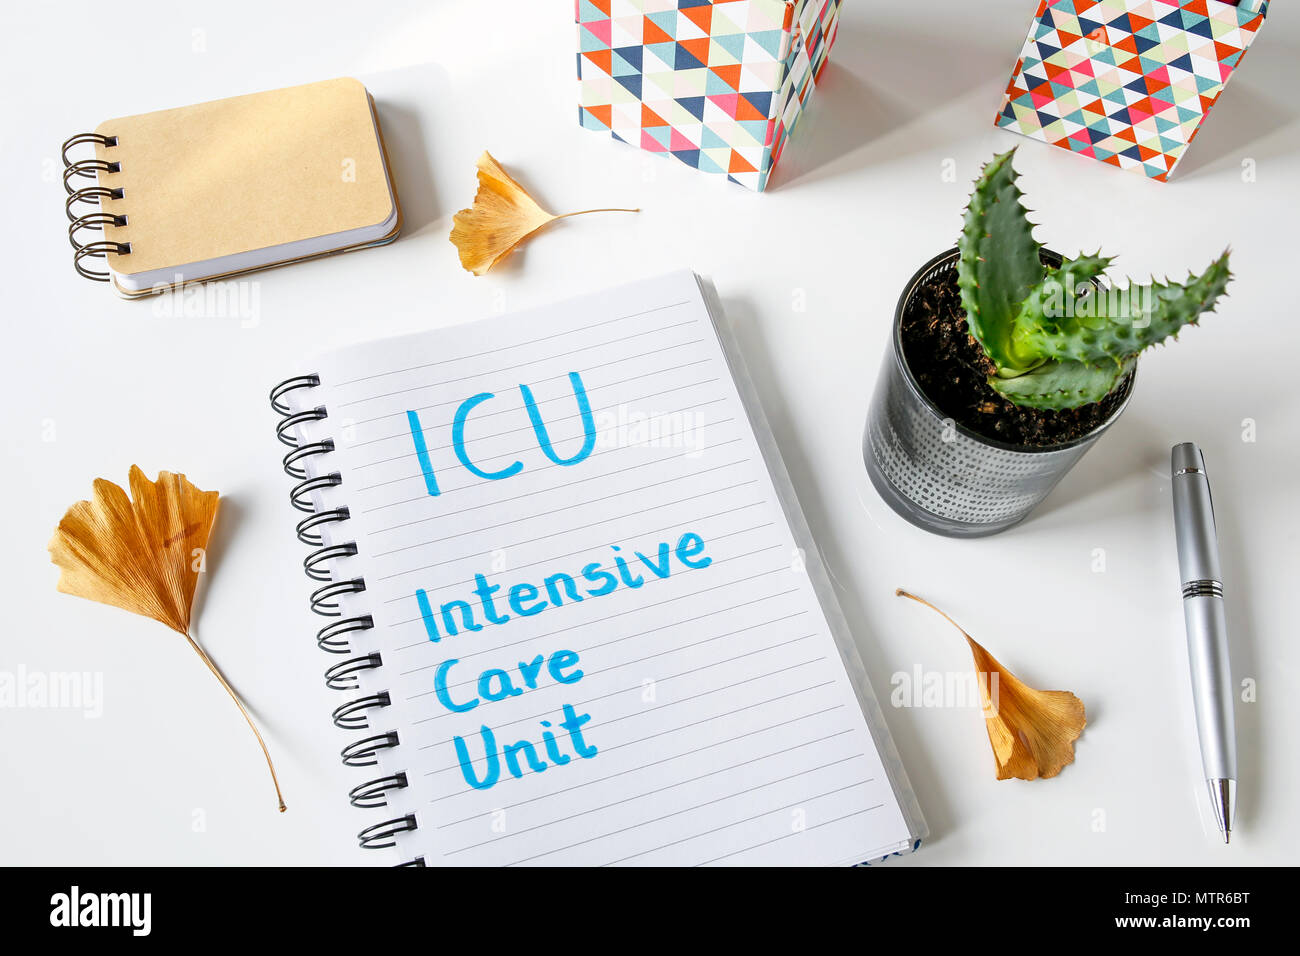 ICU Intensive care unit written in a notebook on white table - Stock Image